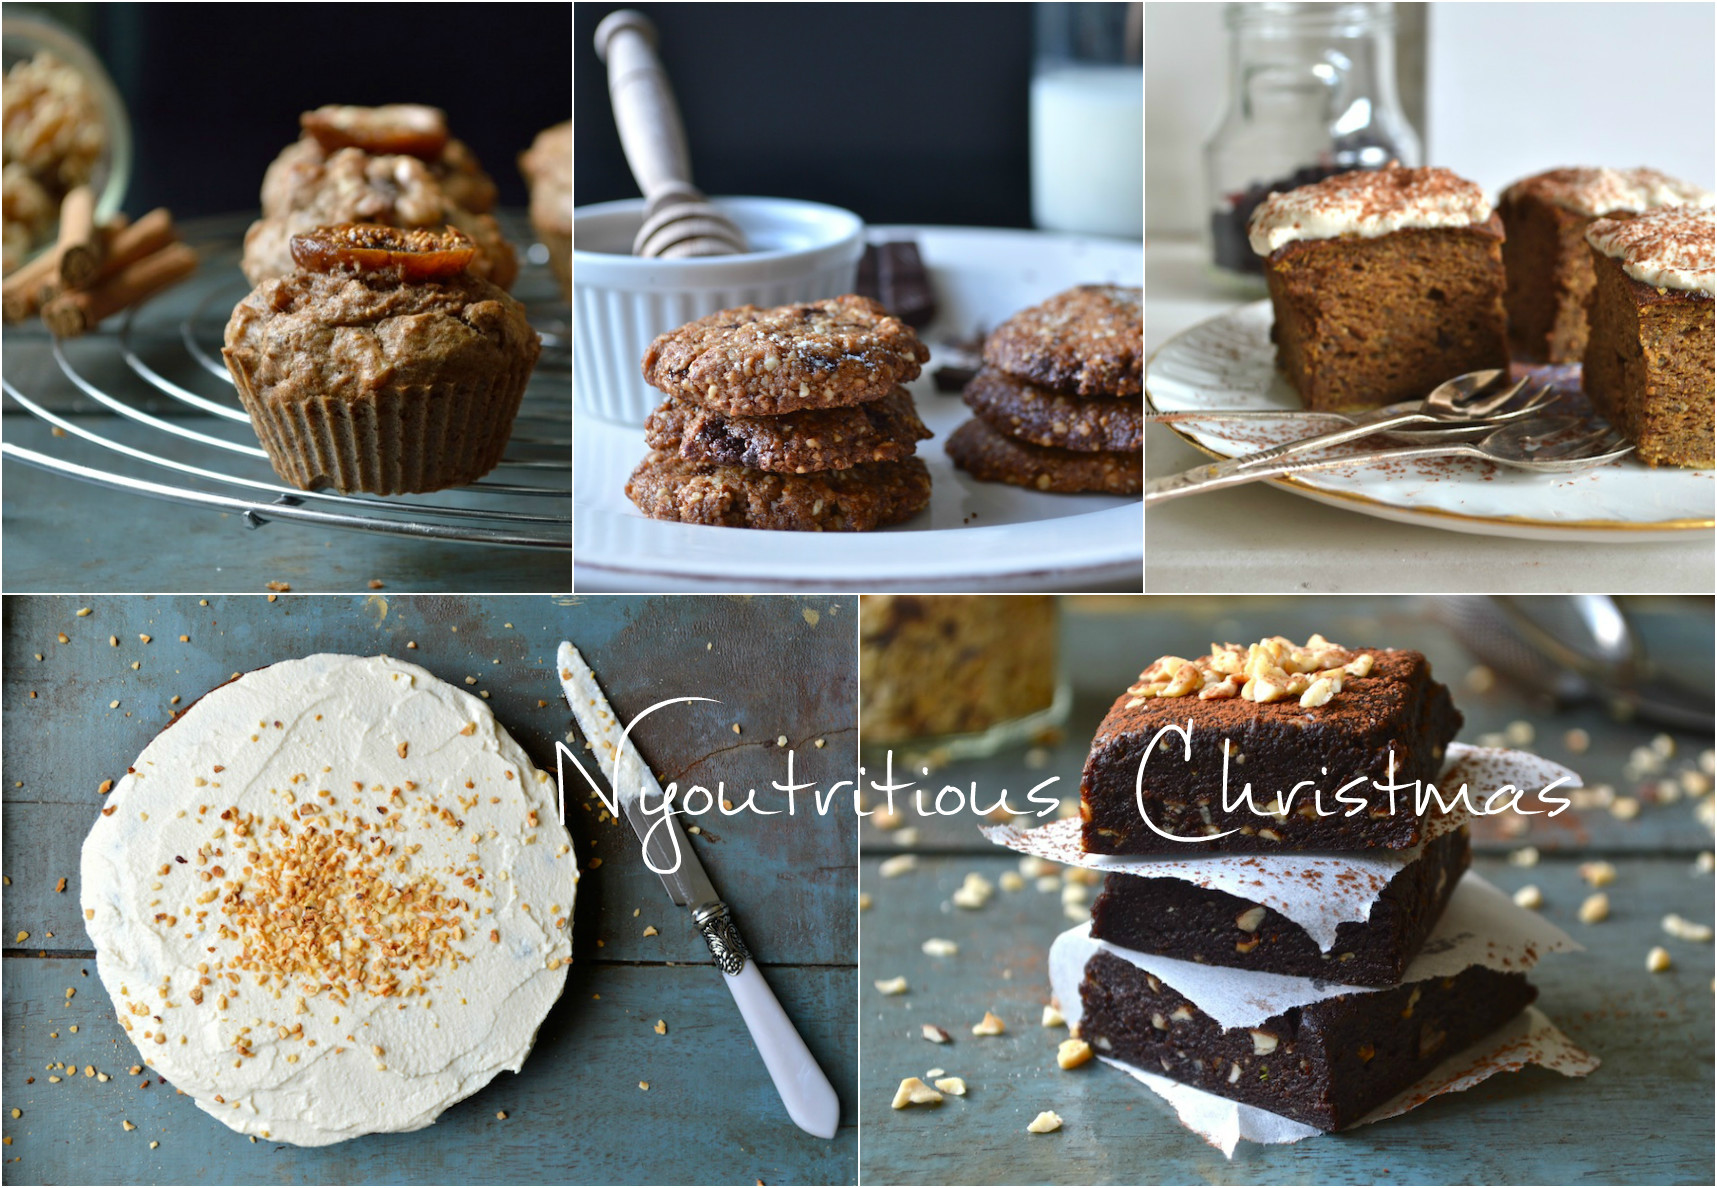 Healthy Holiday Desserts  Healthy Christmas Desserts Nyoutritious